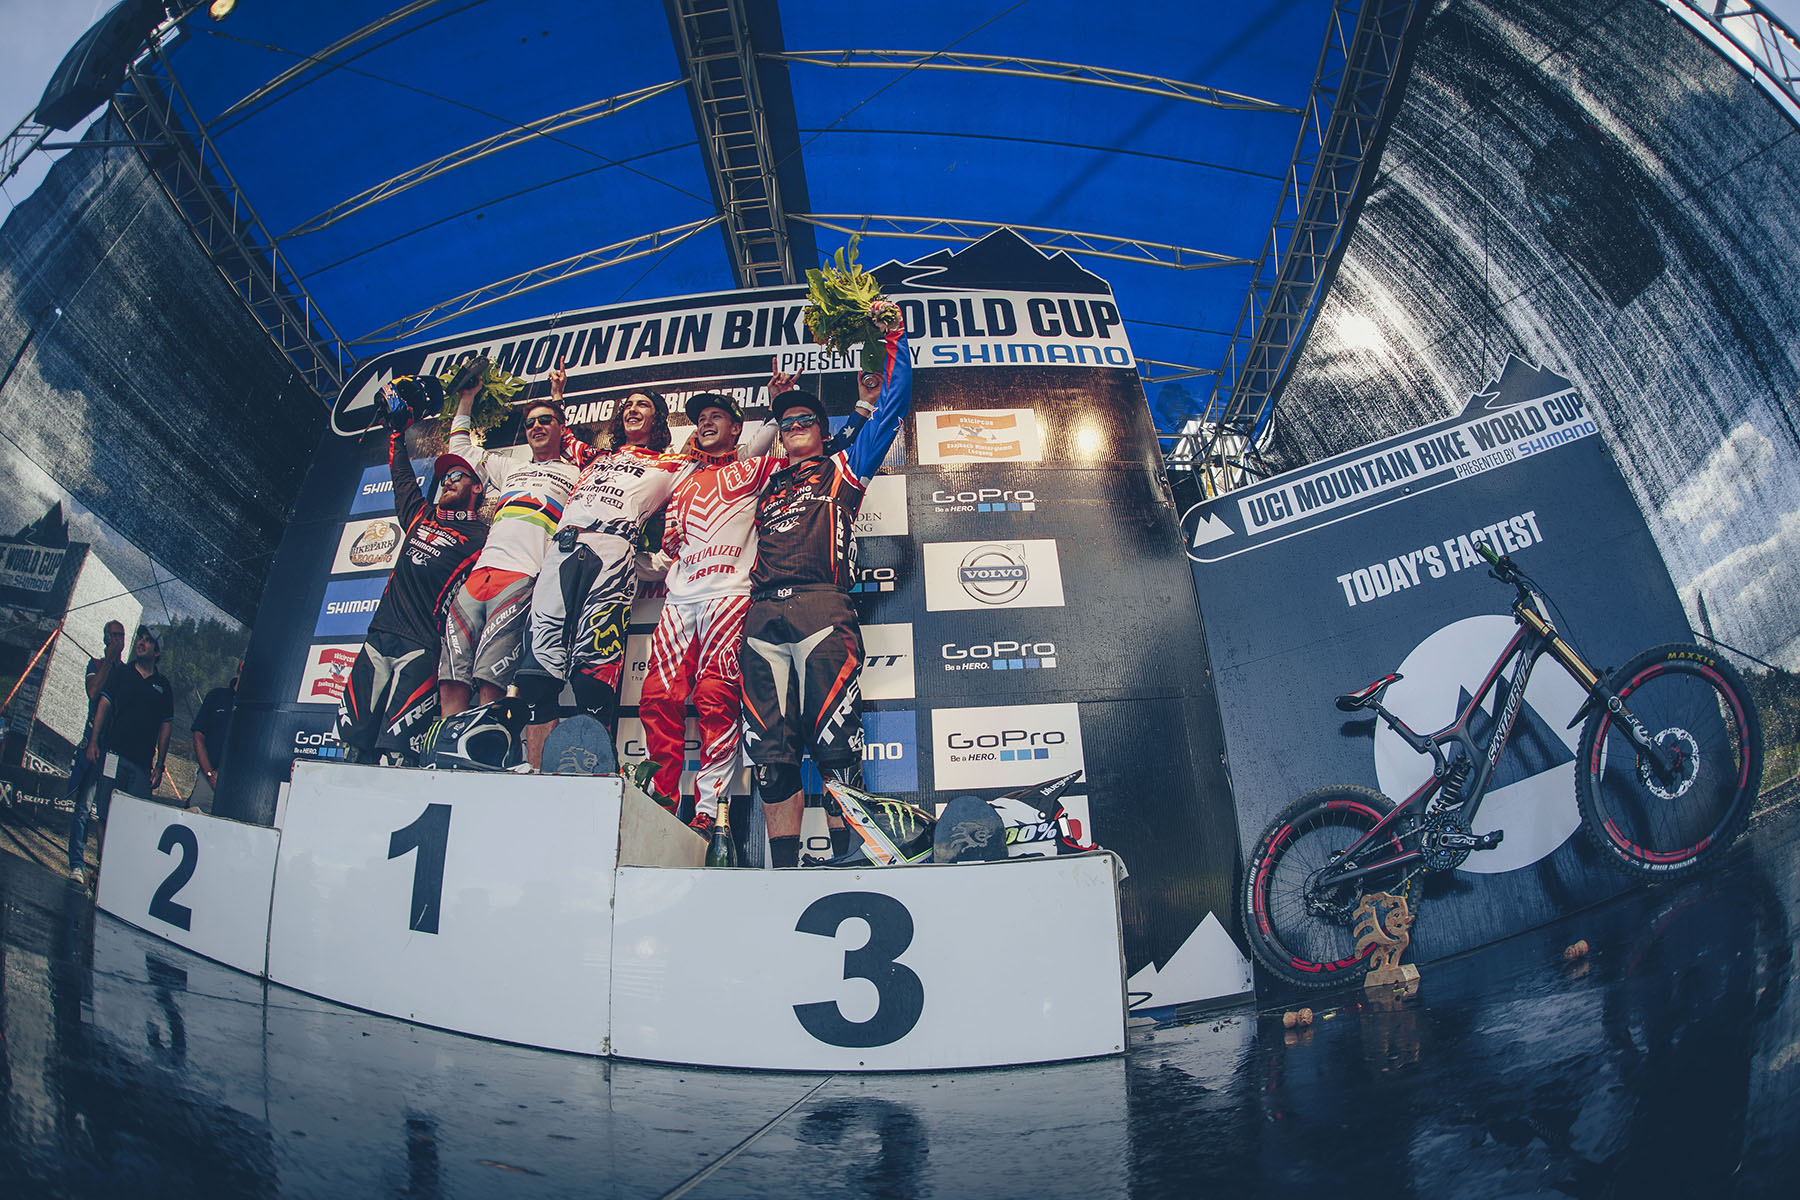 Your Elite mens podium sees two Syndicate riders and two riders up here. Great results for both these teams. But what this round has shown us is, 26inch aint that bad after all!